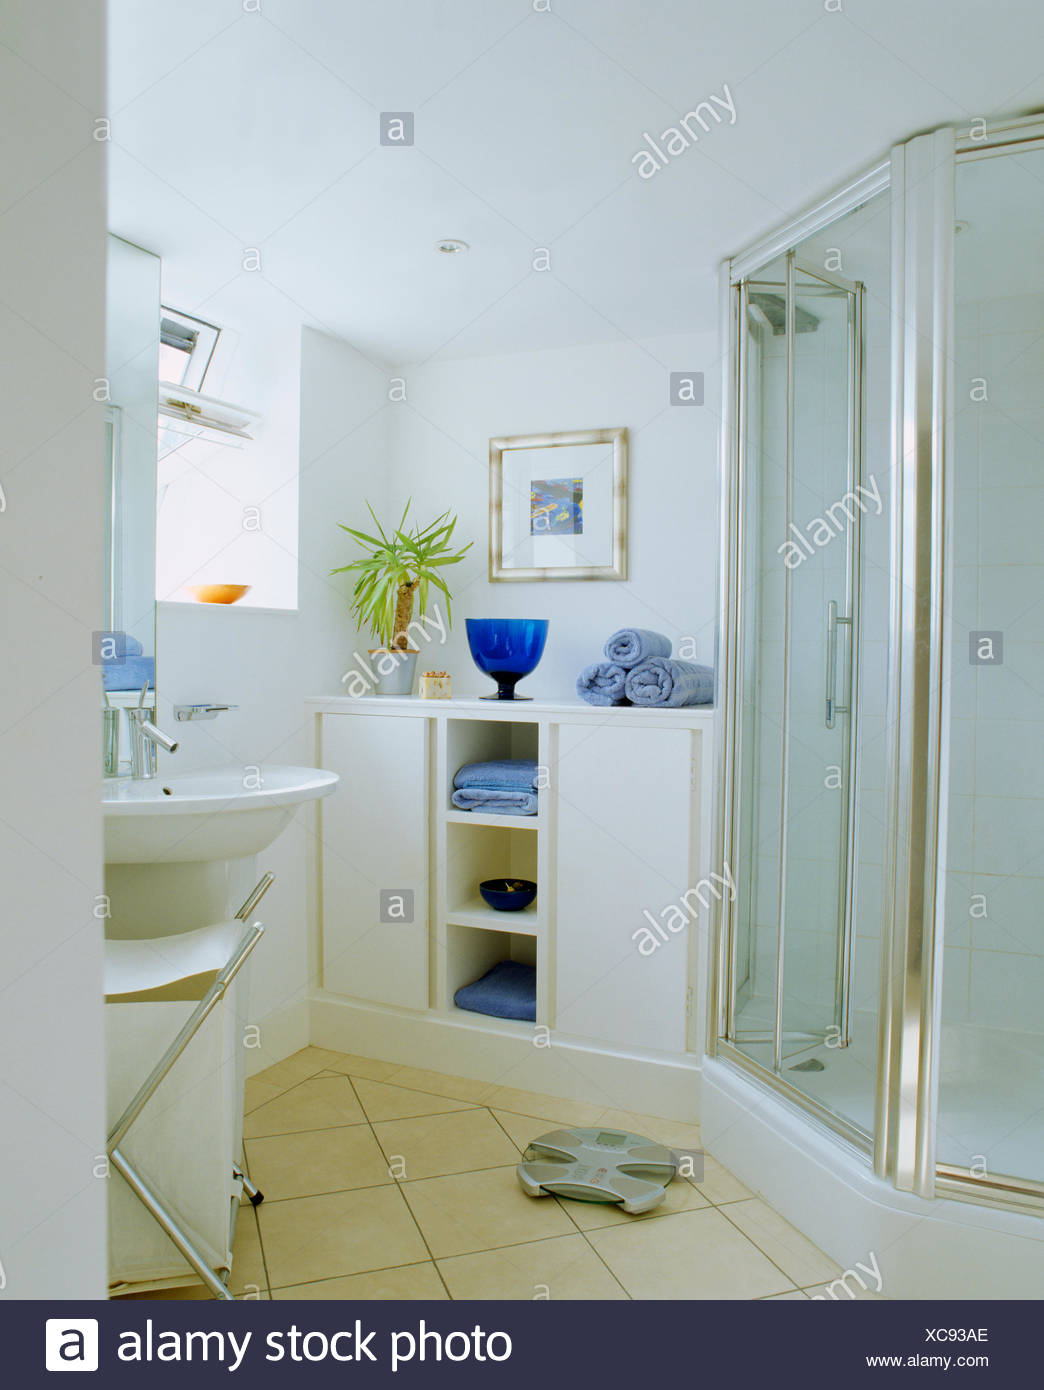 Large blue glass vase and pale blue towels on shelf unit in modern ...